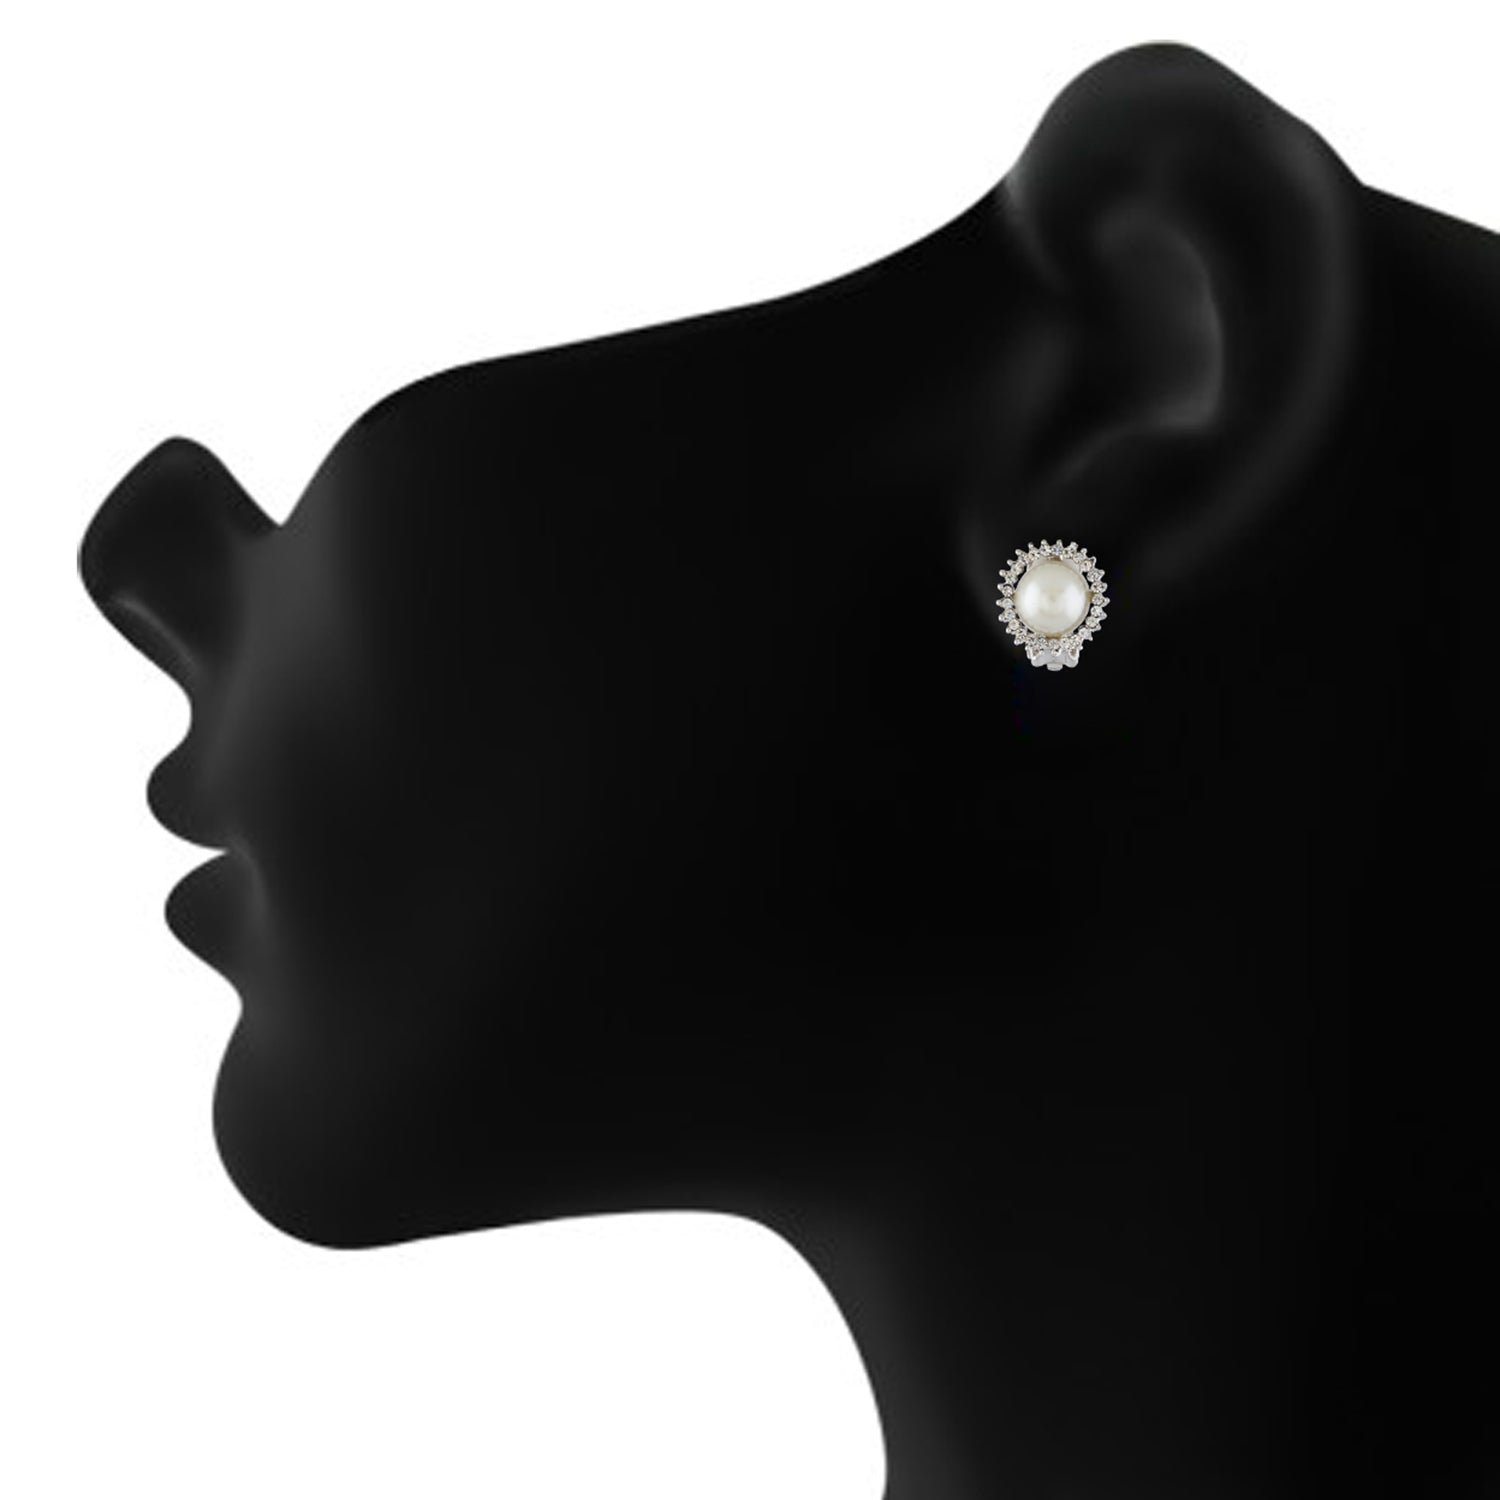 Enchanting White and Silver Colour Round Shape Alloy Clip On Earrings for Girls with on Pierced Ears